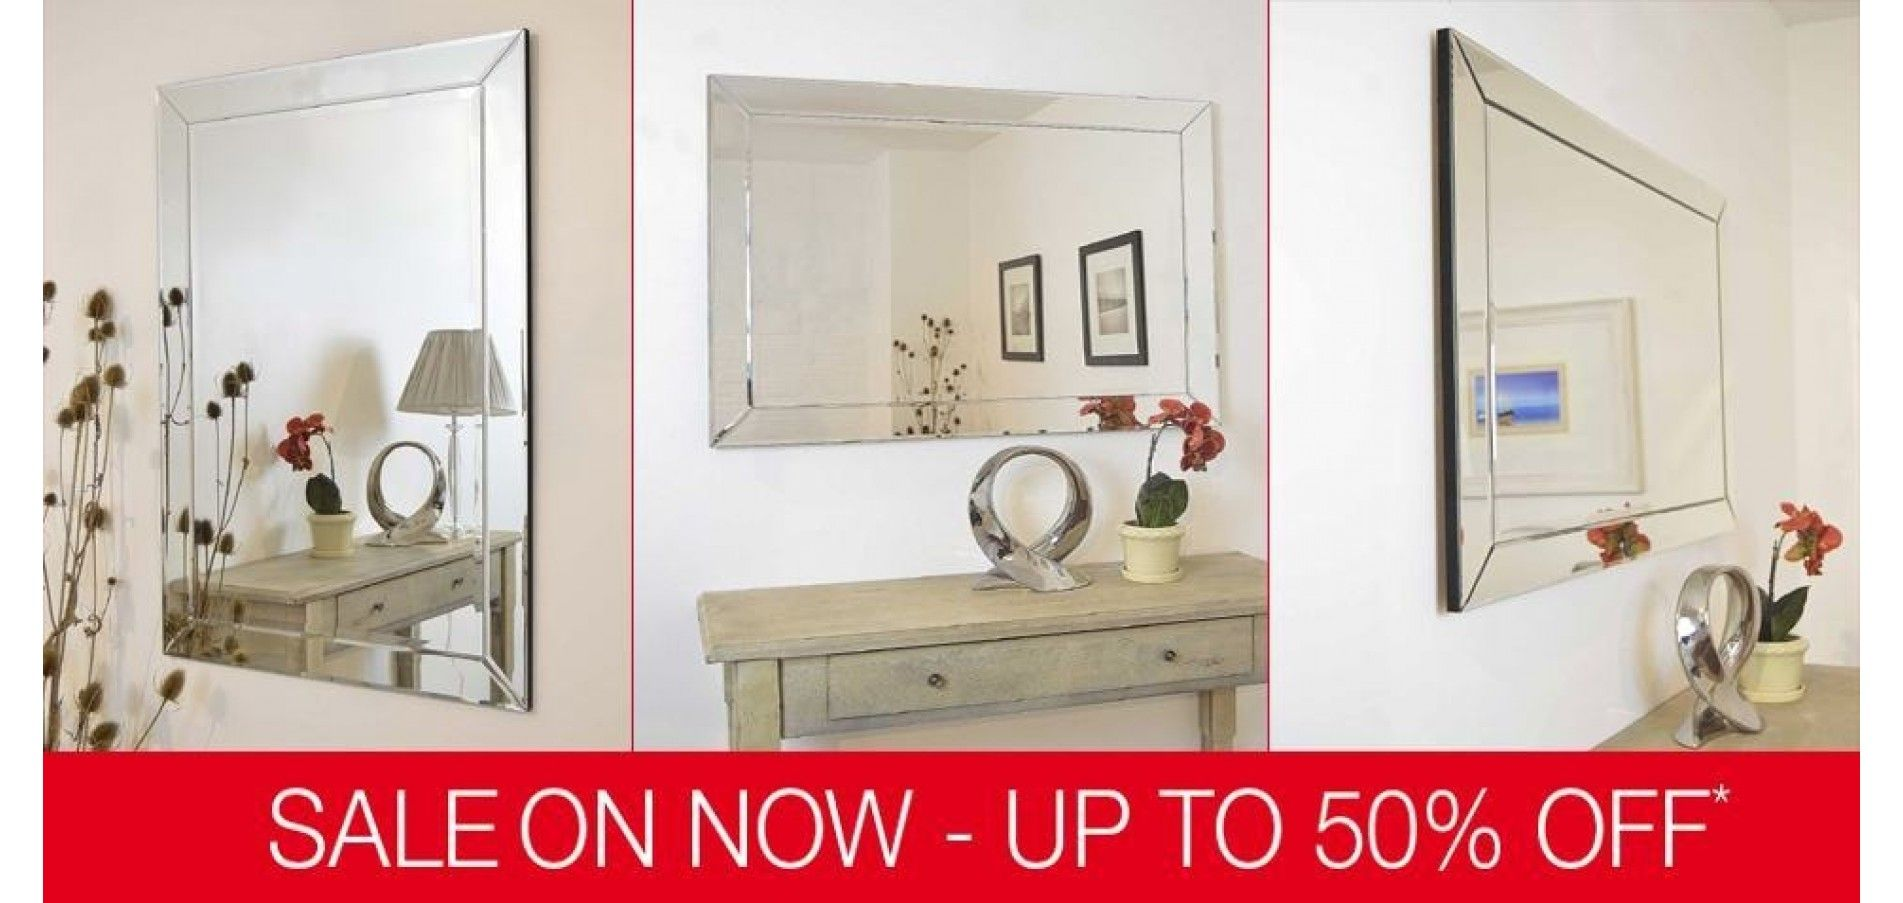 These majestic wall mirrors light up a room with a rich decadence ...